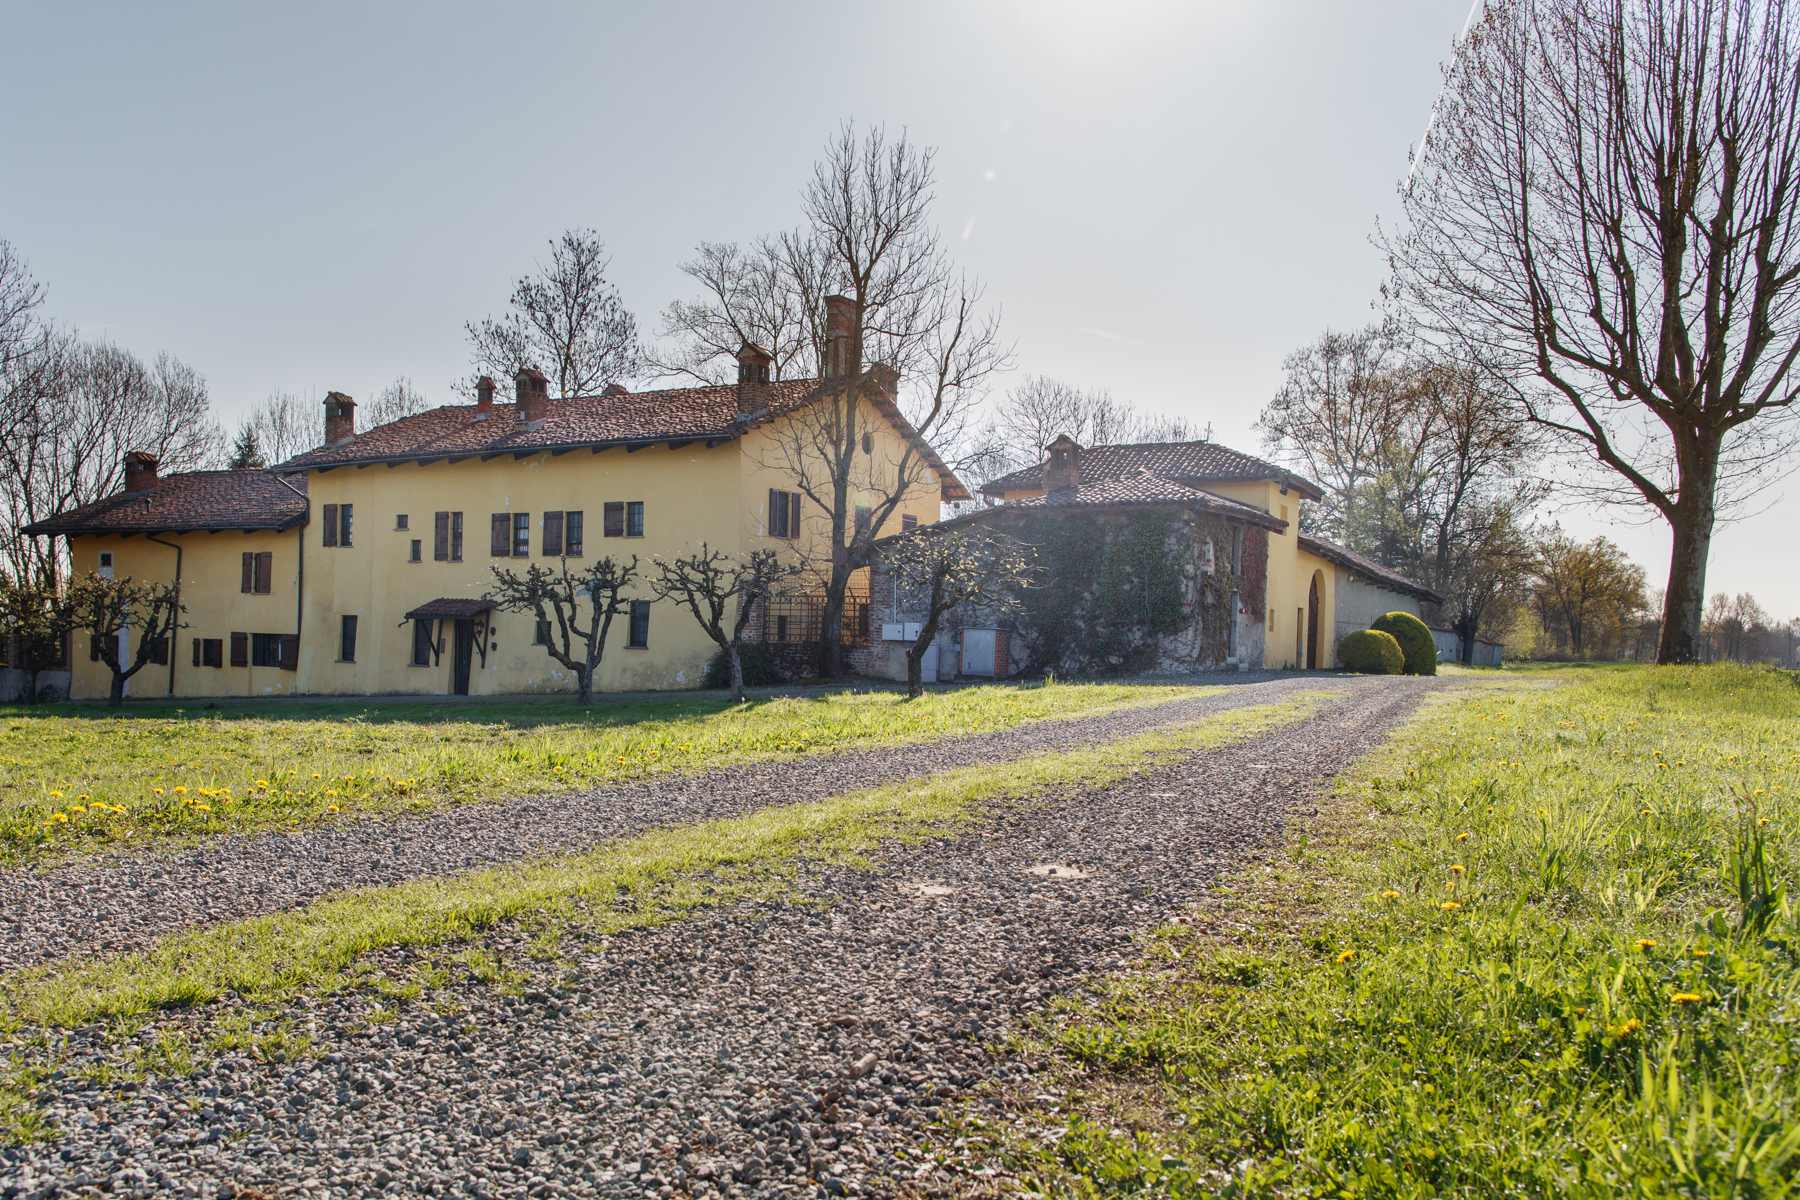 Single Family Home for Sale at Historic farmhouse surrounded by a park Via Giuseppe Cavallo Other Turin, Turin 10078 Italy